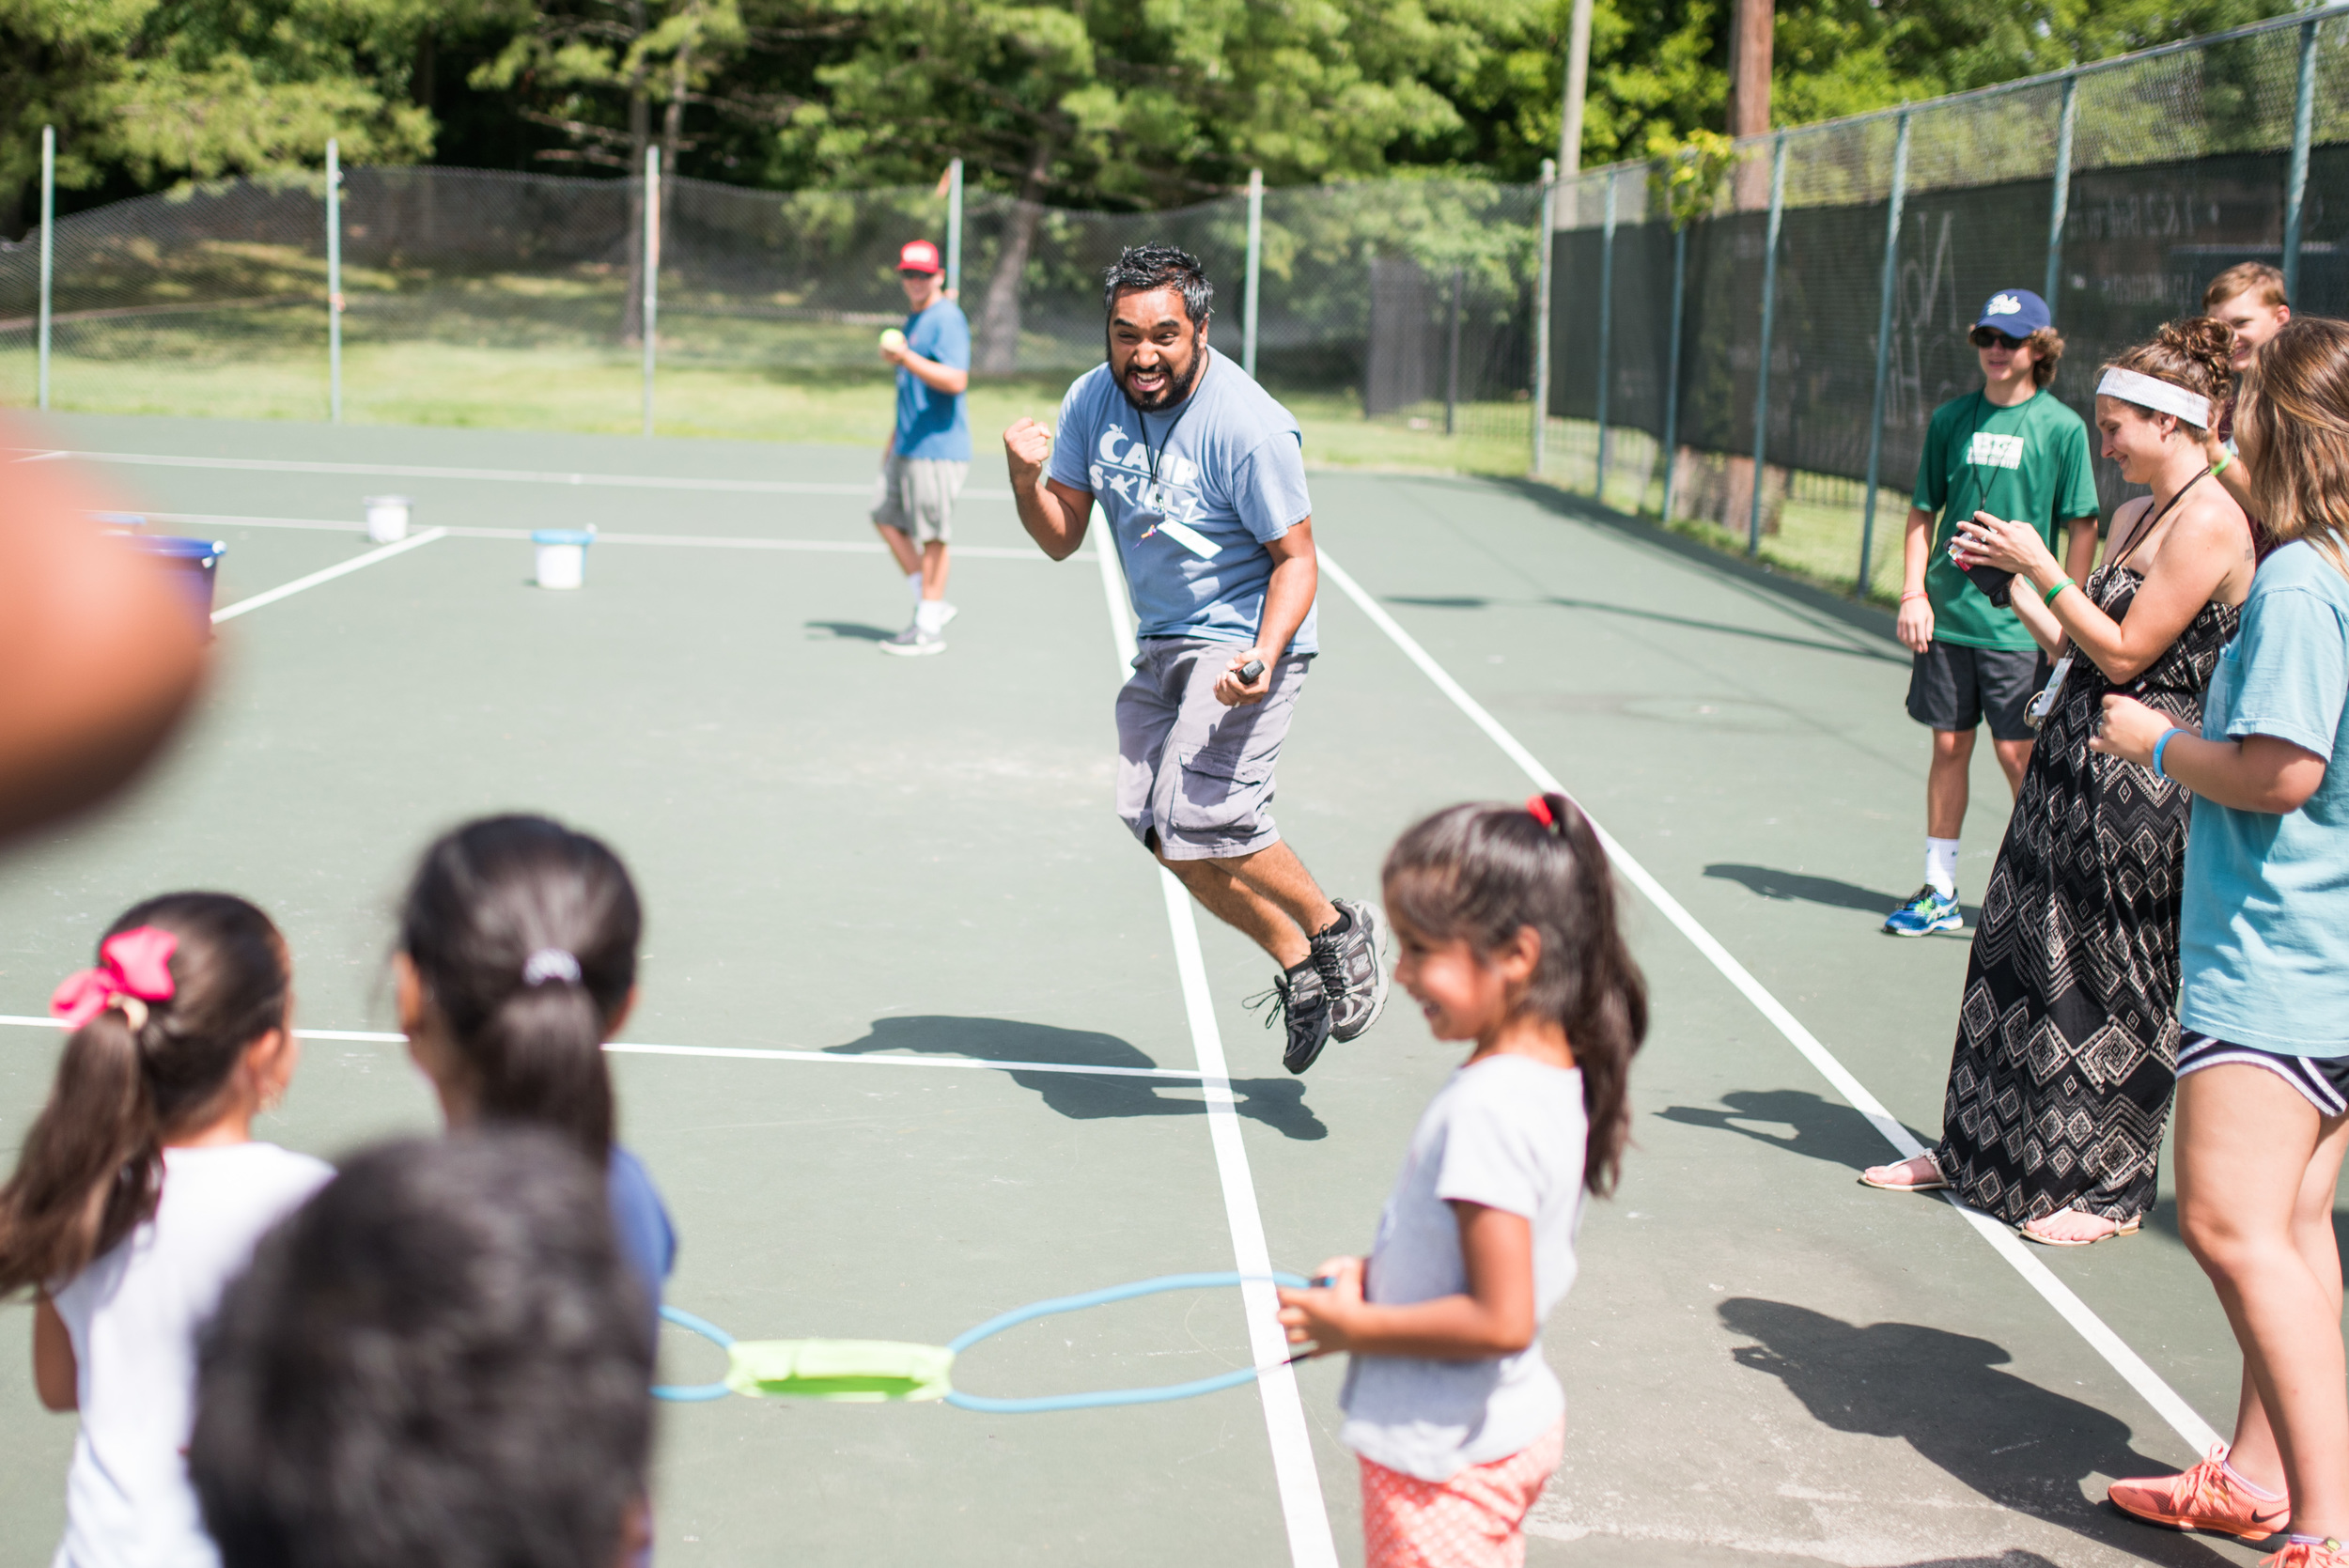 Rafael Reyes demonstrates the power of enthusiasm. Enthusiasm extinguishes all traces of apathy which can steal the youth's ability to engage and exert real effort towards an obstacle. Youth are constantly learning how to approach challenge, and thankfully they have counselors like Rafael who can model enthusiasm and belief.